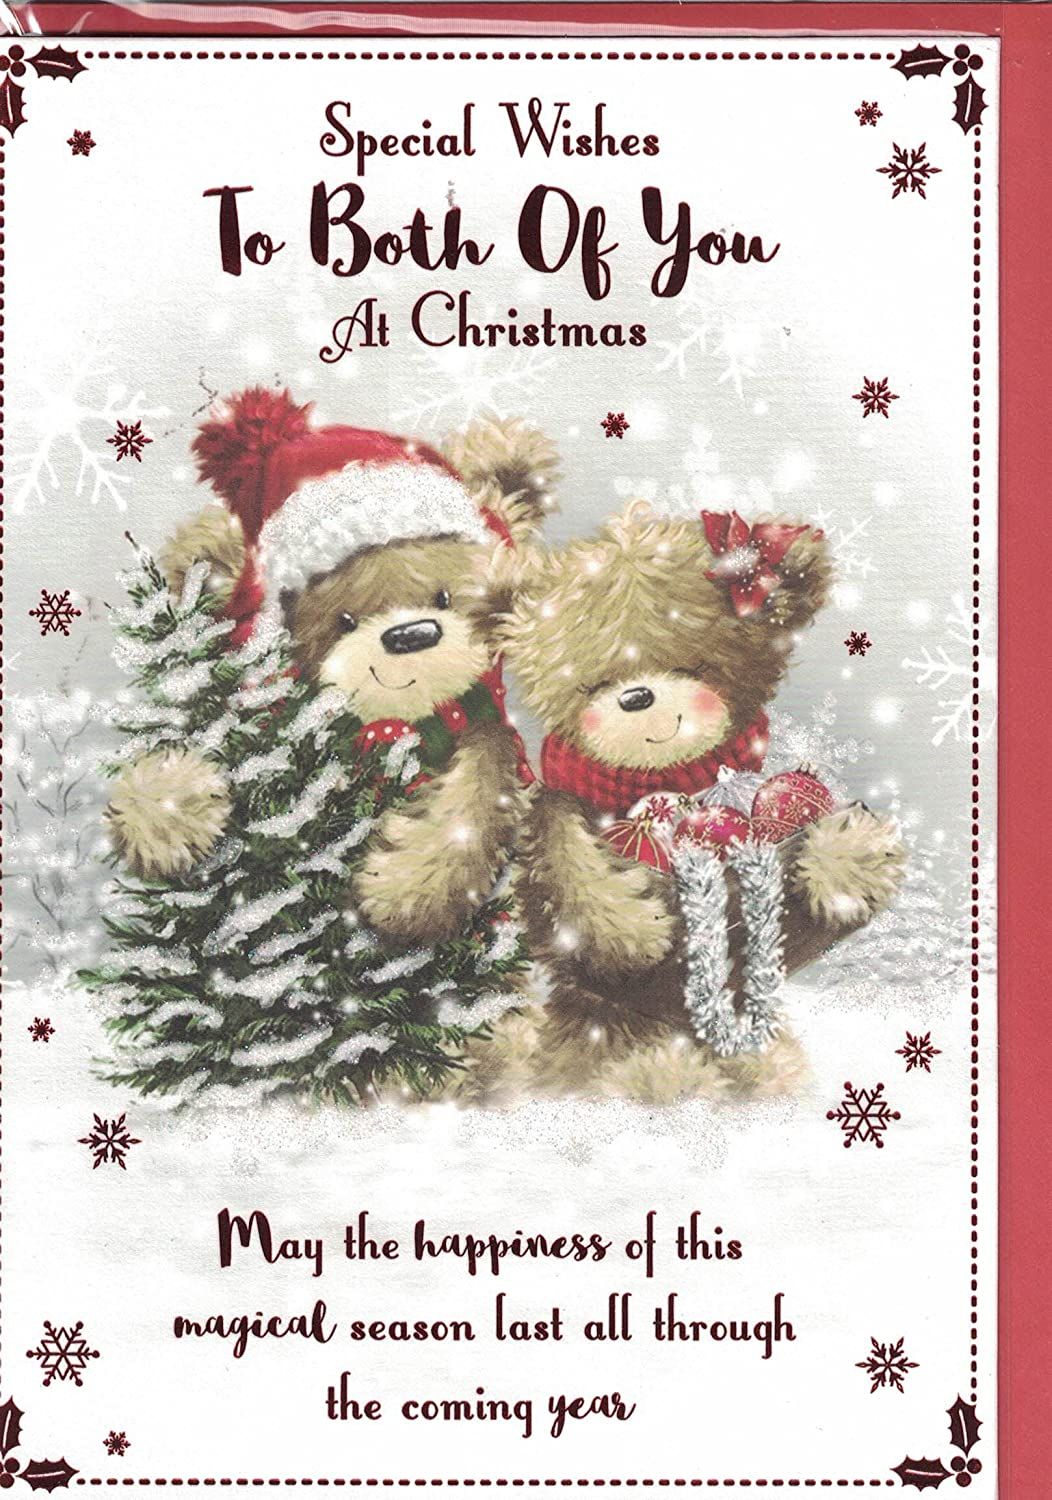 To Both Of You Christmas Card ~ To Both Of You Happy Christmas ~ Bears & Mistletoe Quality Card prelude